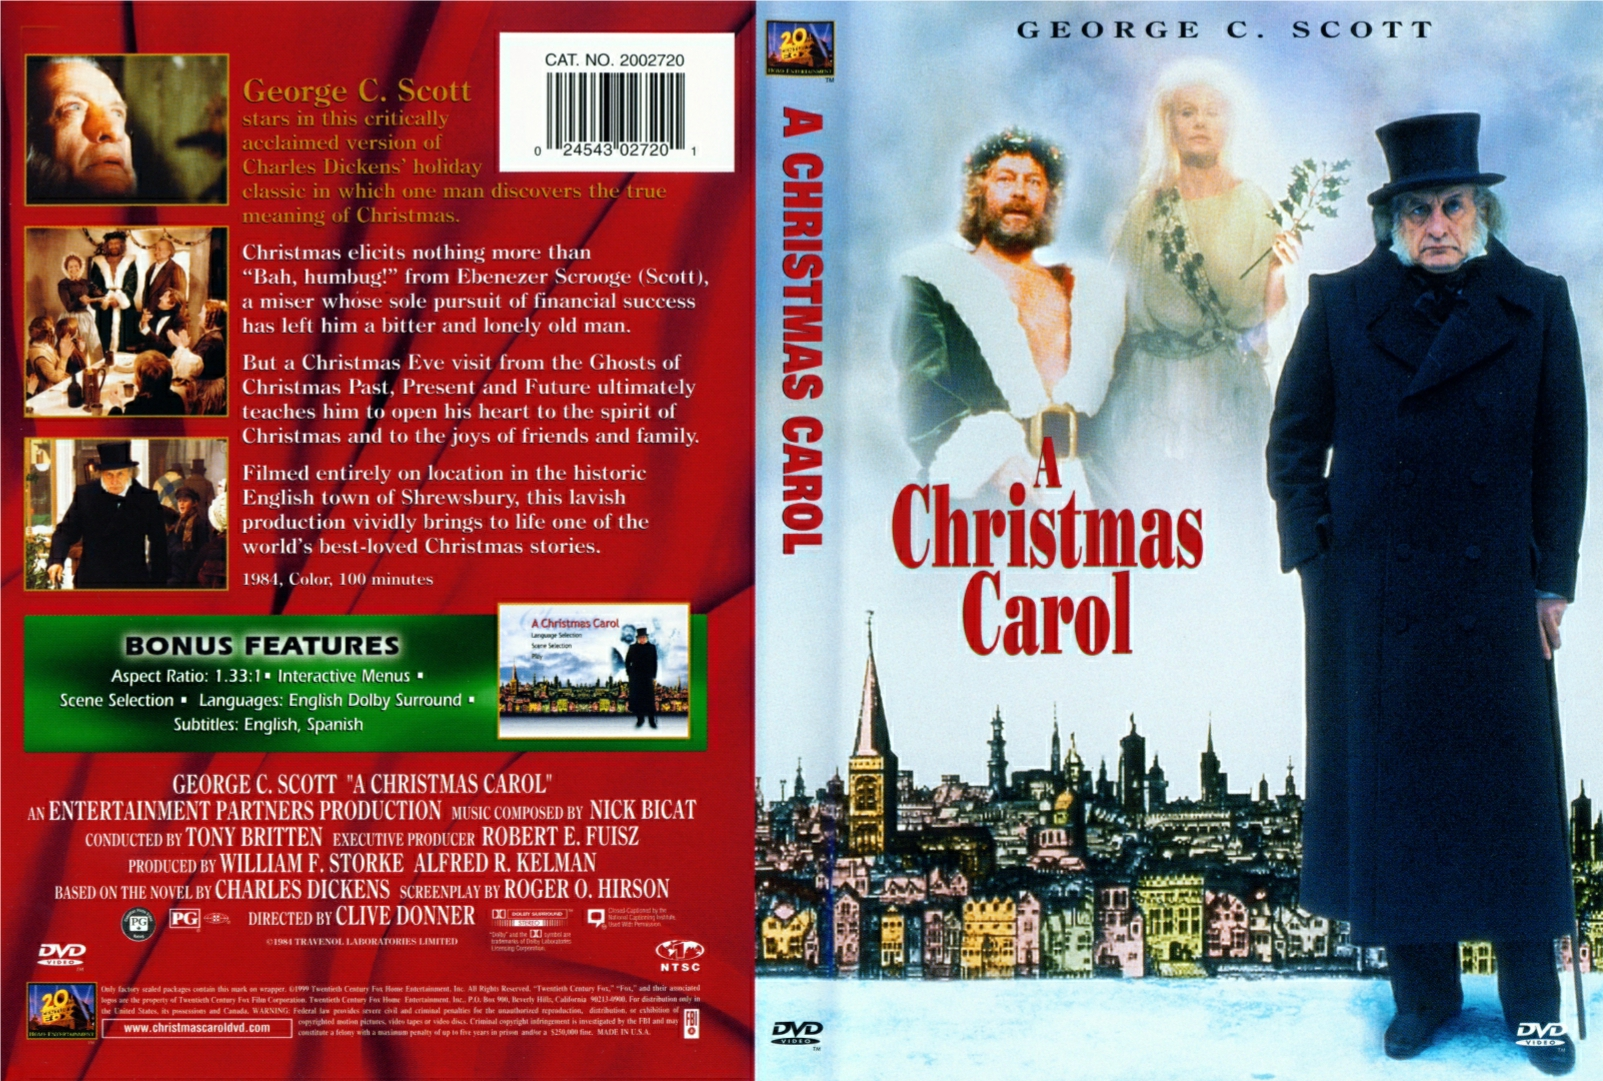 George C Scott A Christmas Carol.Covers Box Sk A Christmas Carol George C Scott High